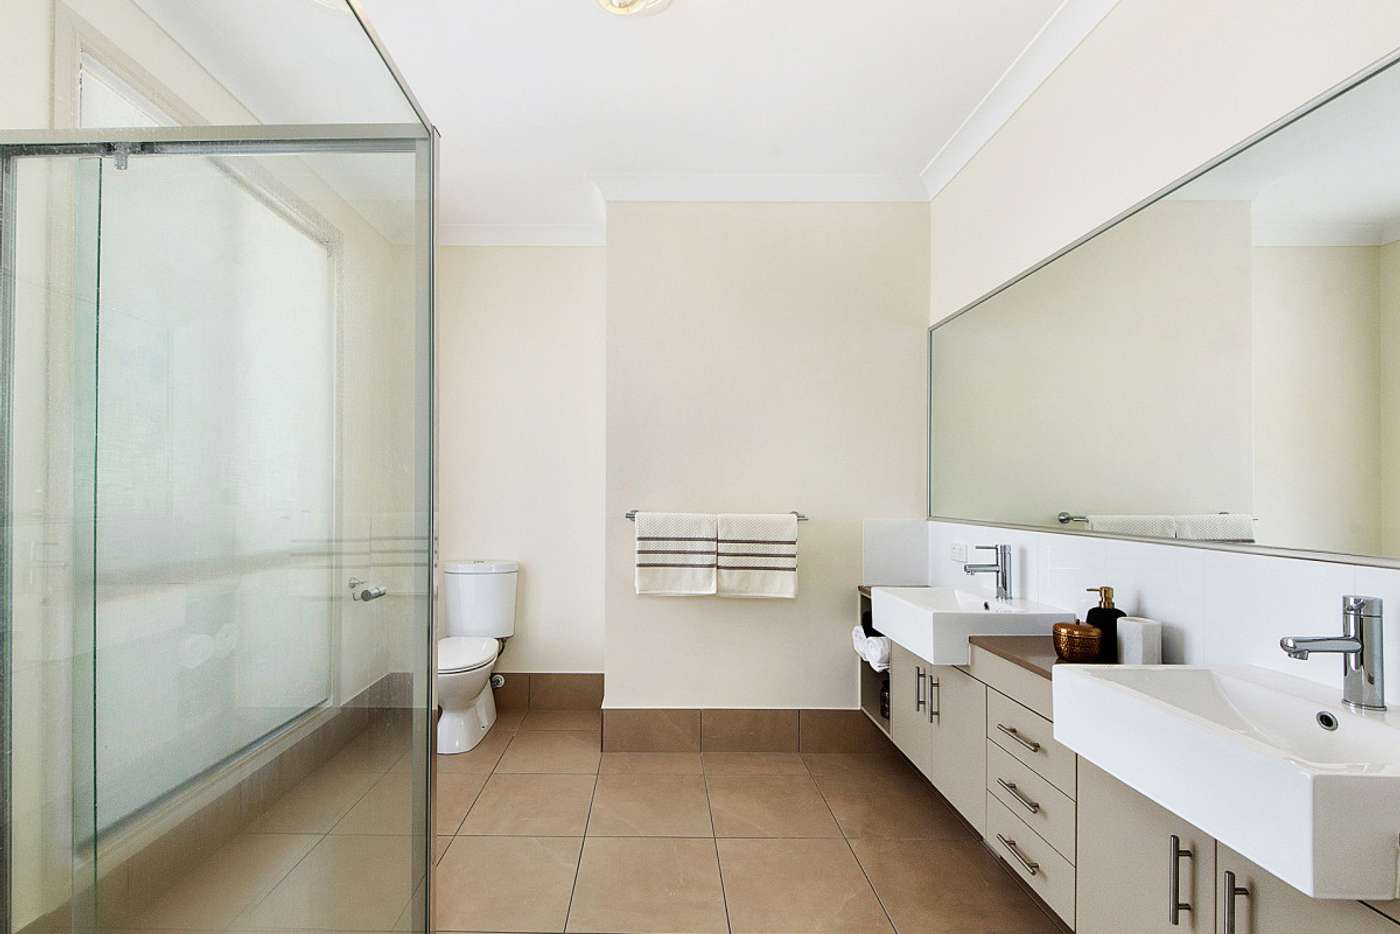 Seventh view of Homely house listing, 9 Stockport Court, Reedy Creek QLD 4227